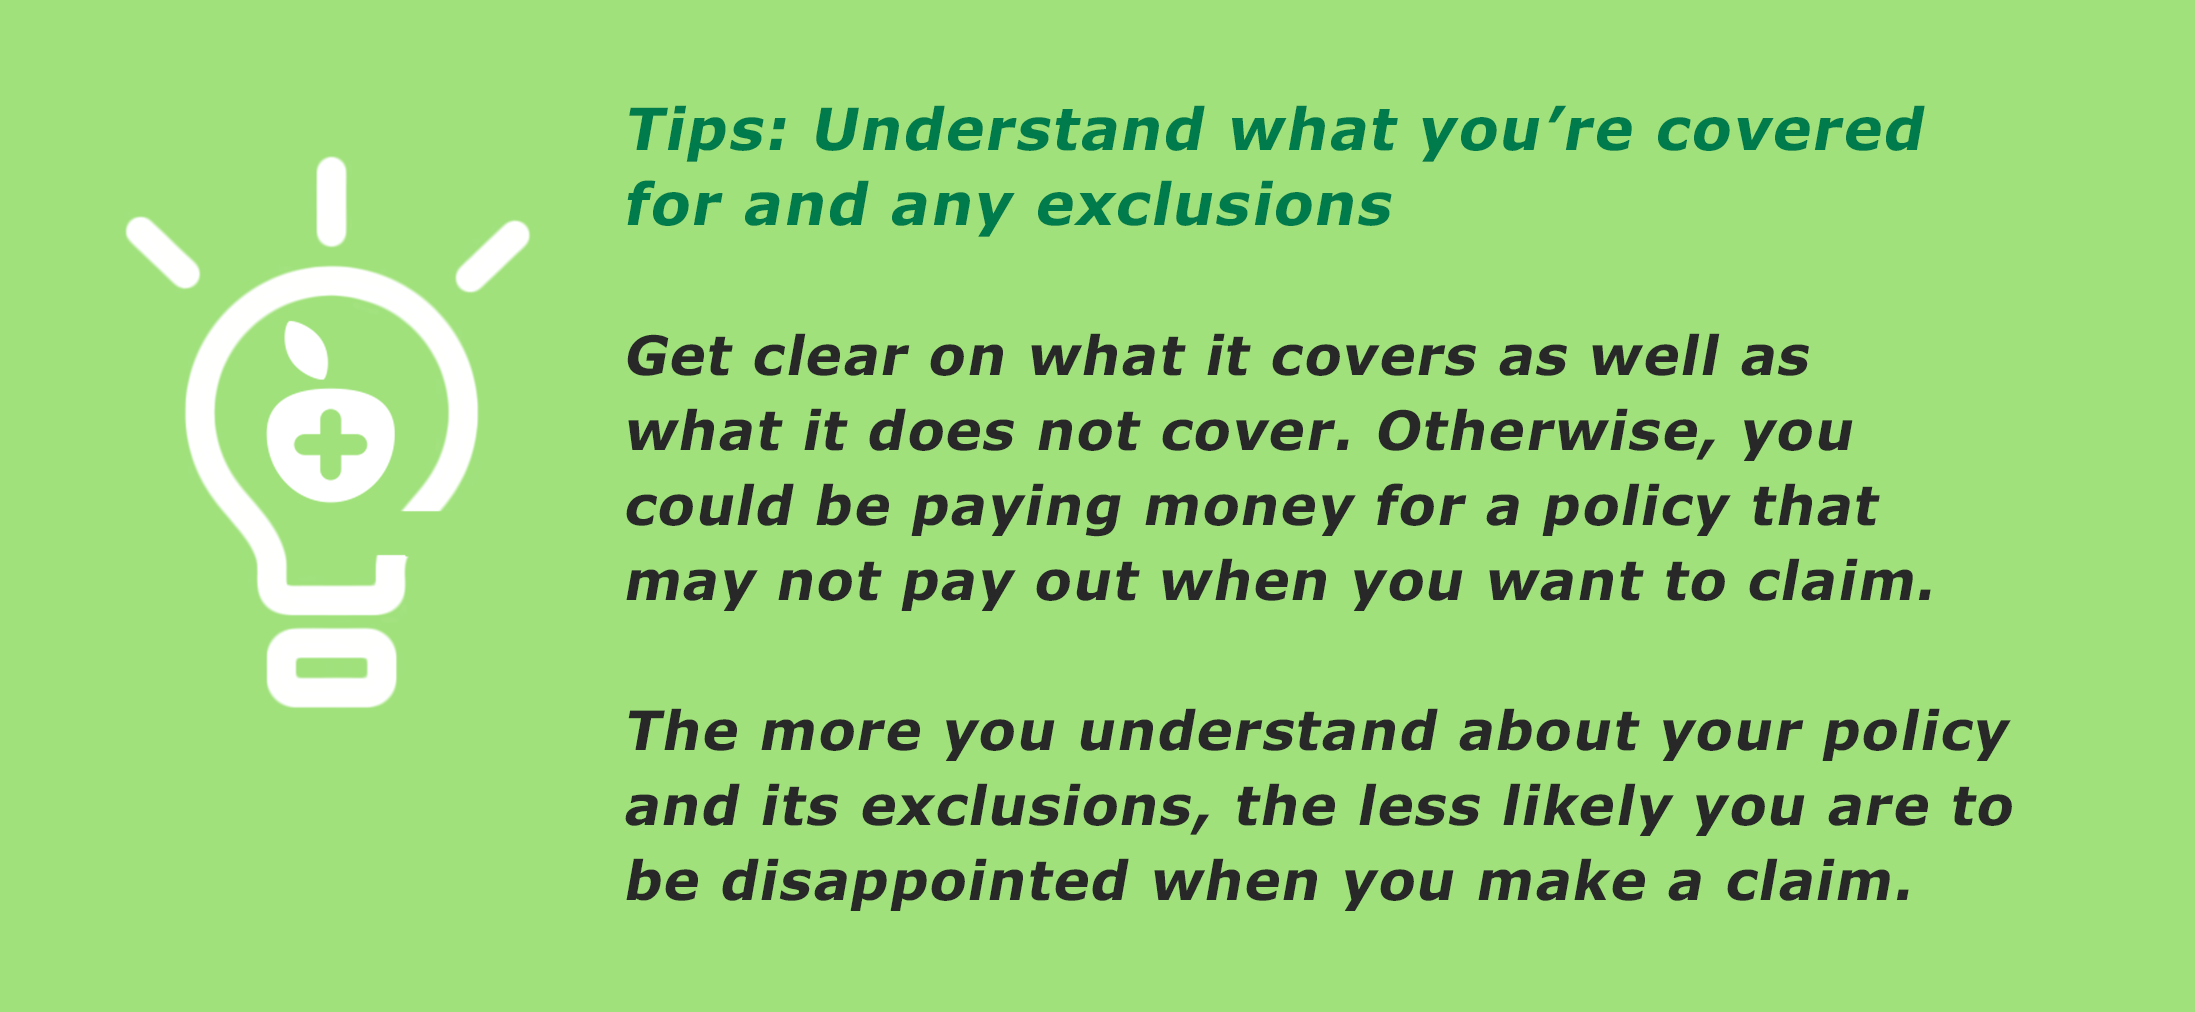 health insurance guide-tip3